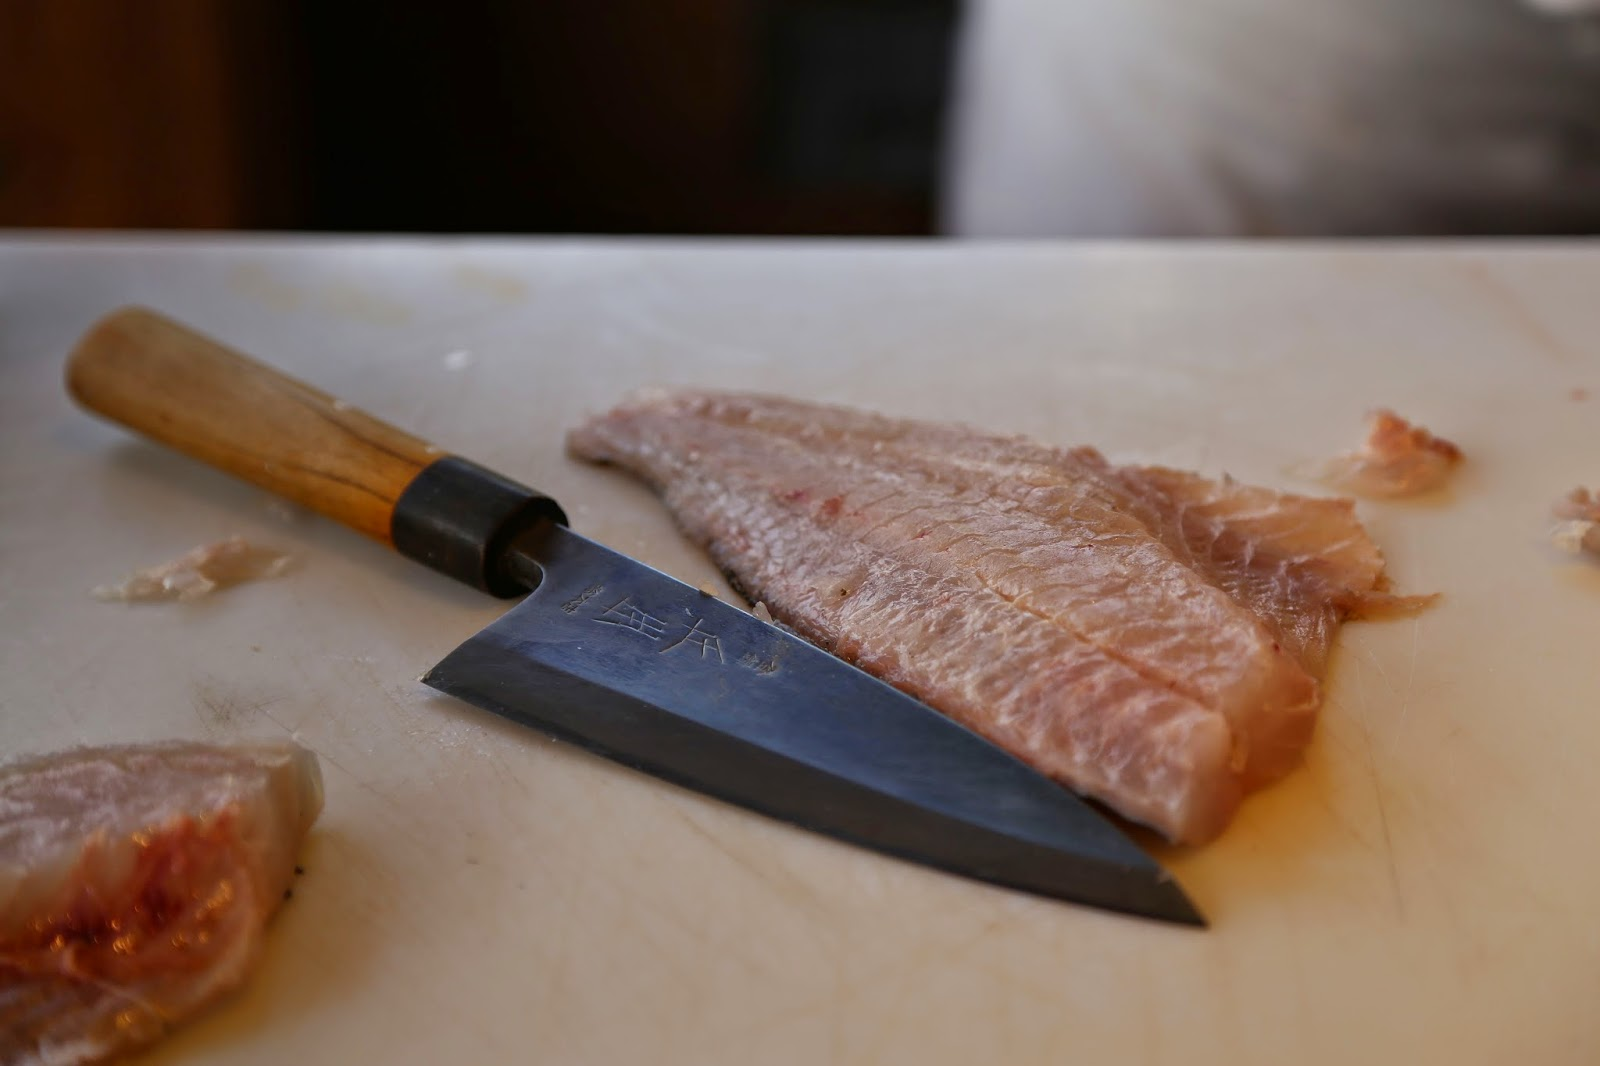 deba knife,used by japanese chef